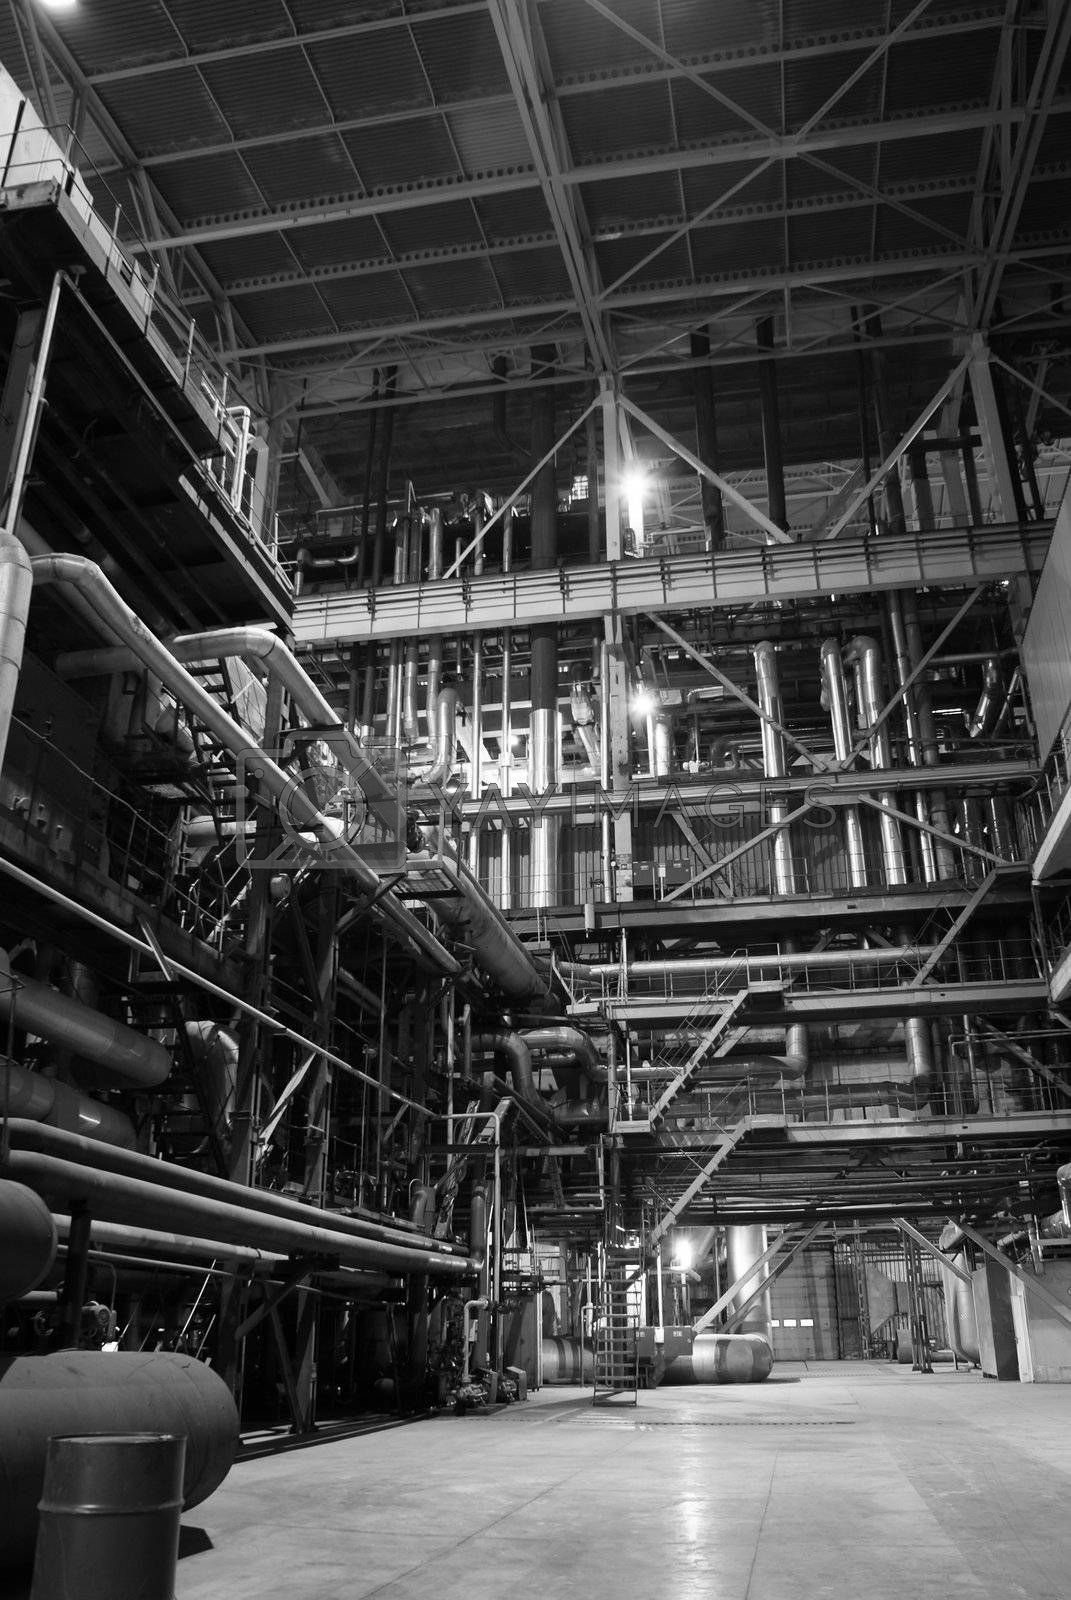 different size and shaped pipes at a power plant